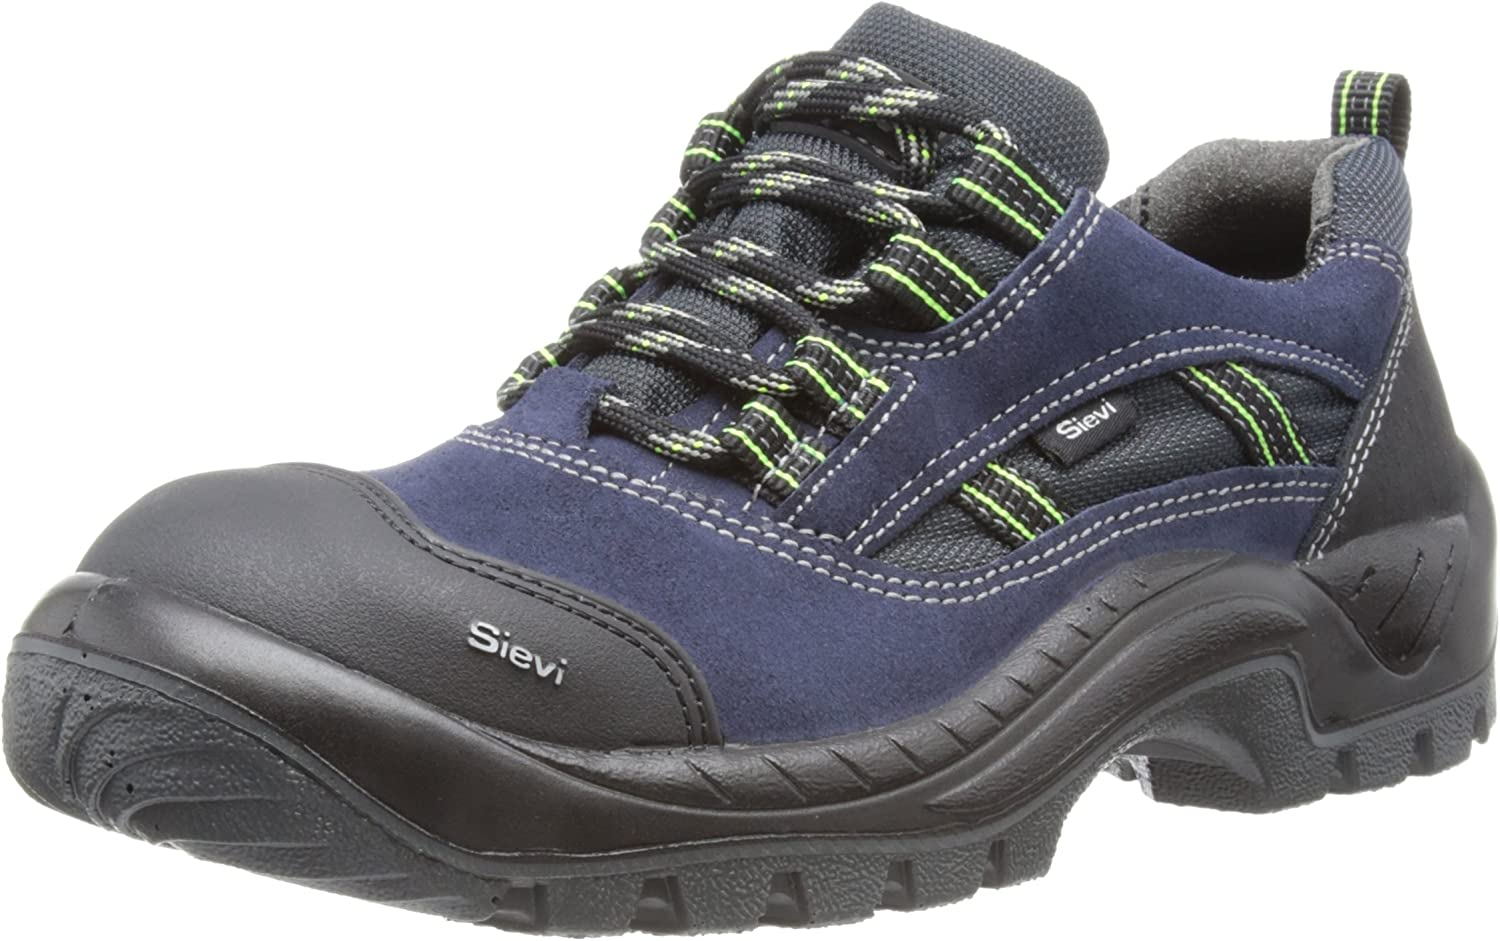 Sievi Unisex-Adult Actor S3 Safety Trainers 46-52615-323-22S